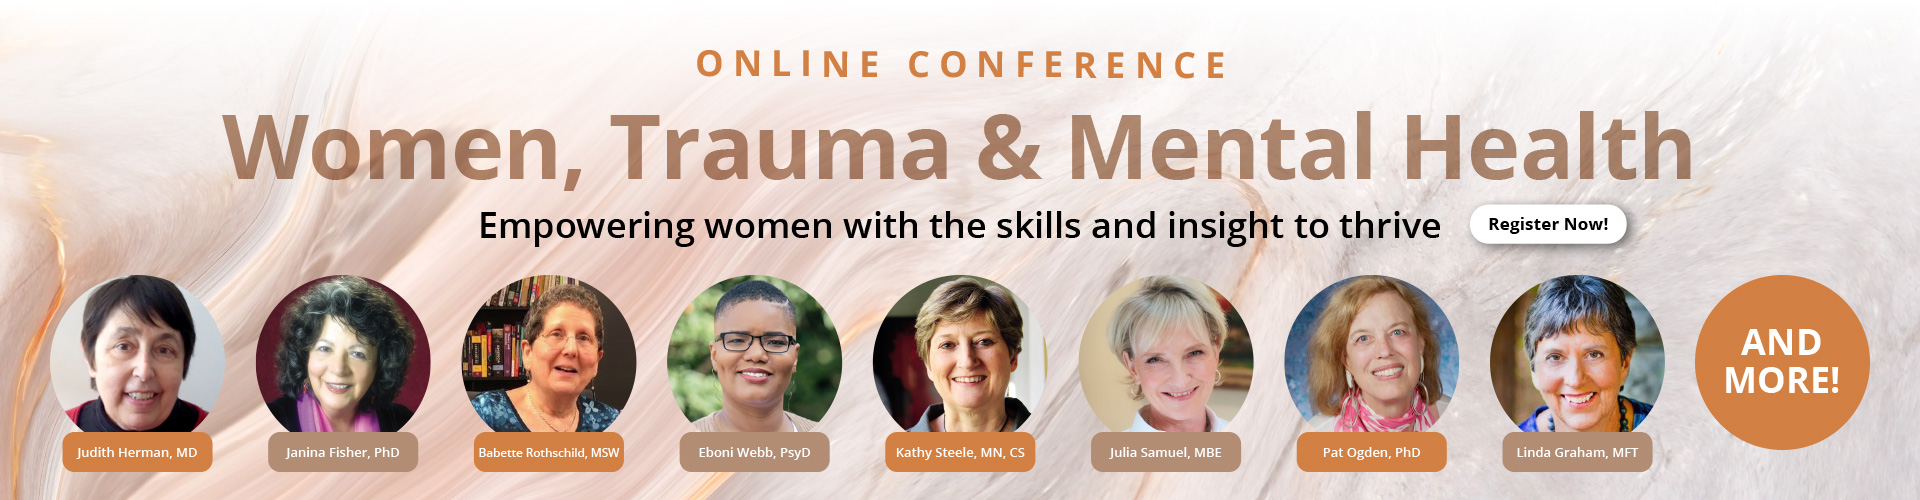 Women, Trauma and Mental Health Master Conference Series: Empowering women with the skills and insight to thrive